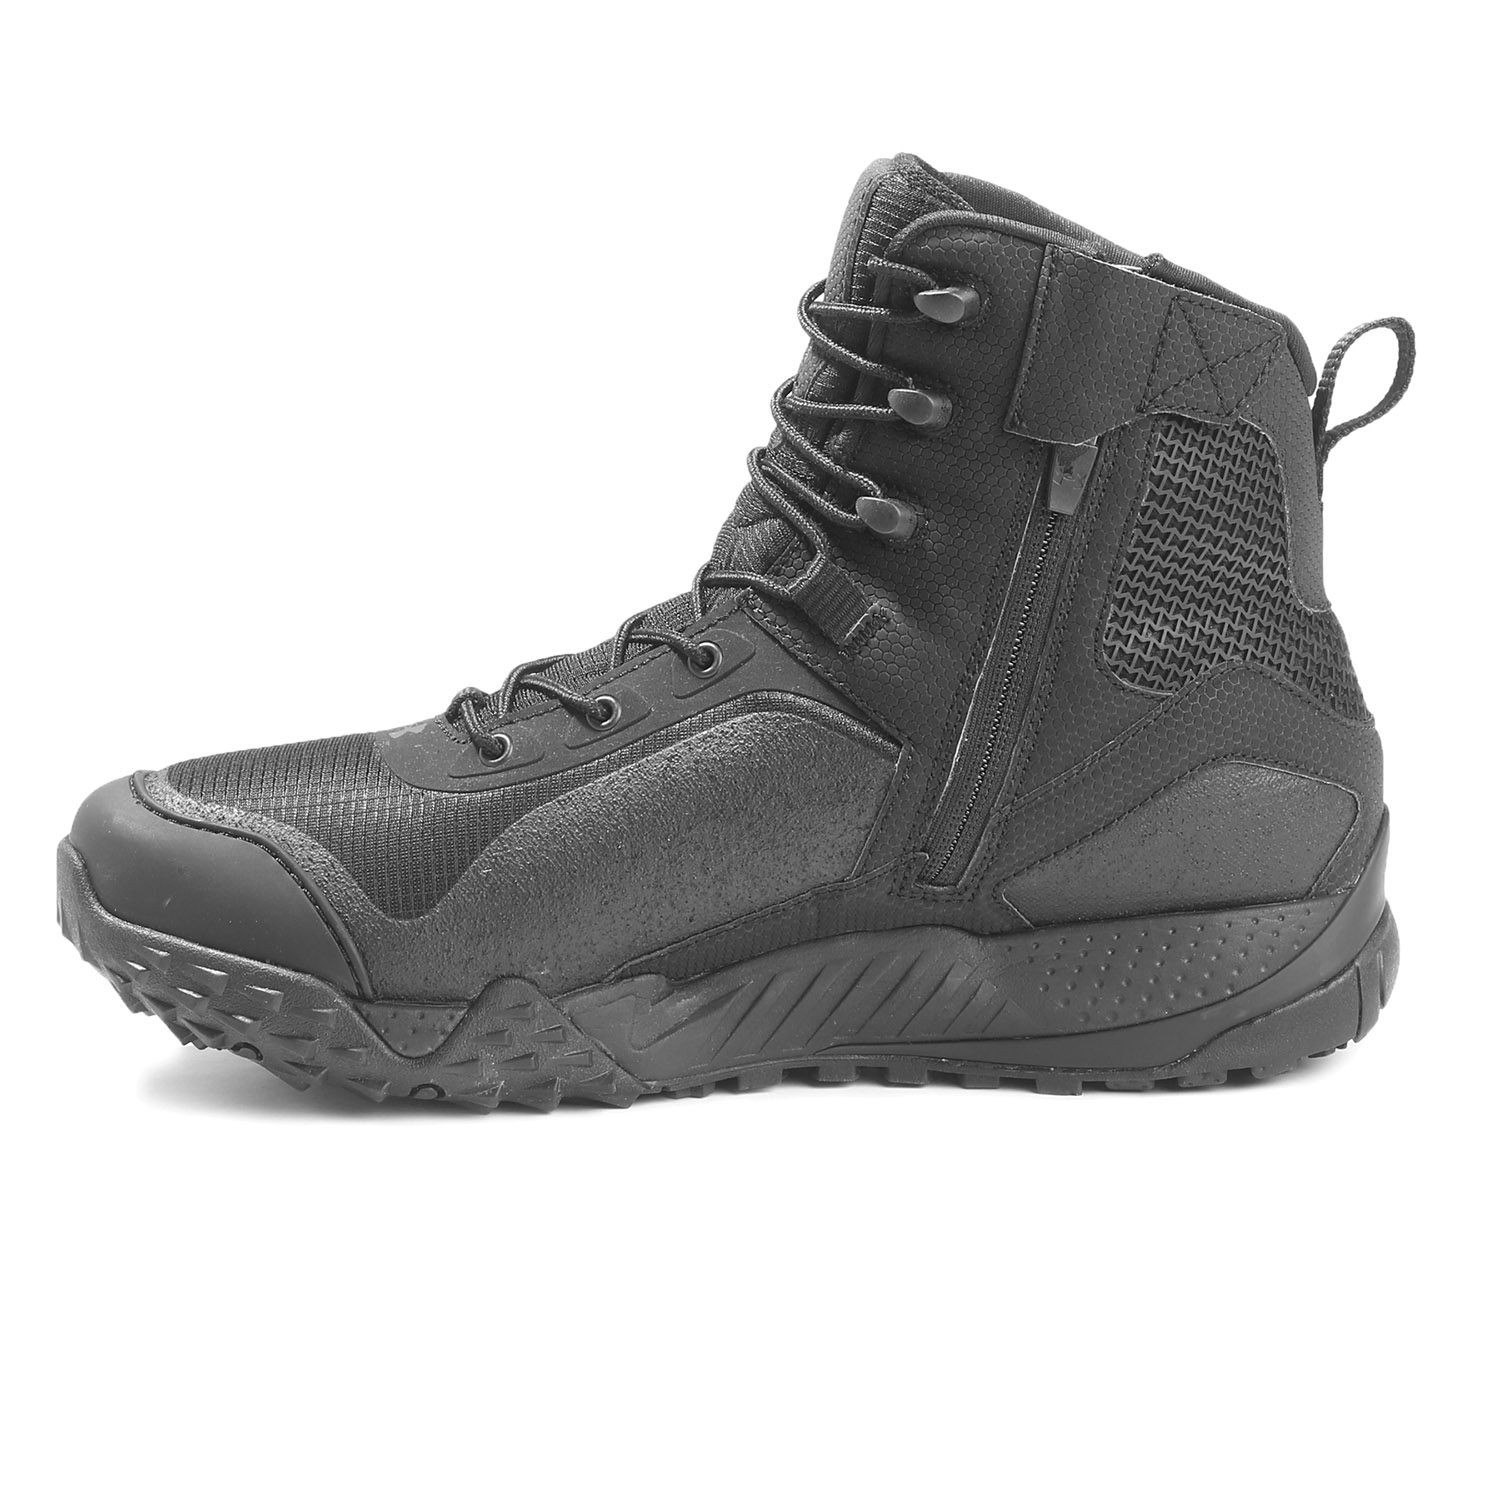 Under Armour Valsetz Rts 7 Quot Side Zip Boots At Galls